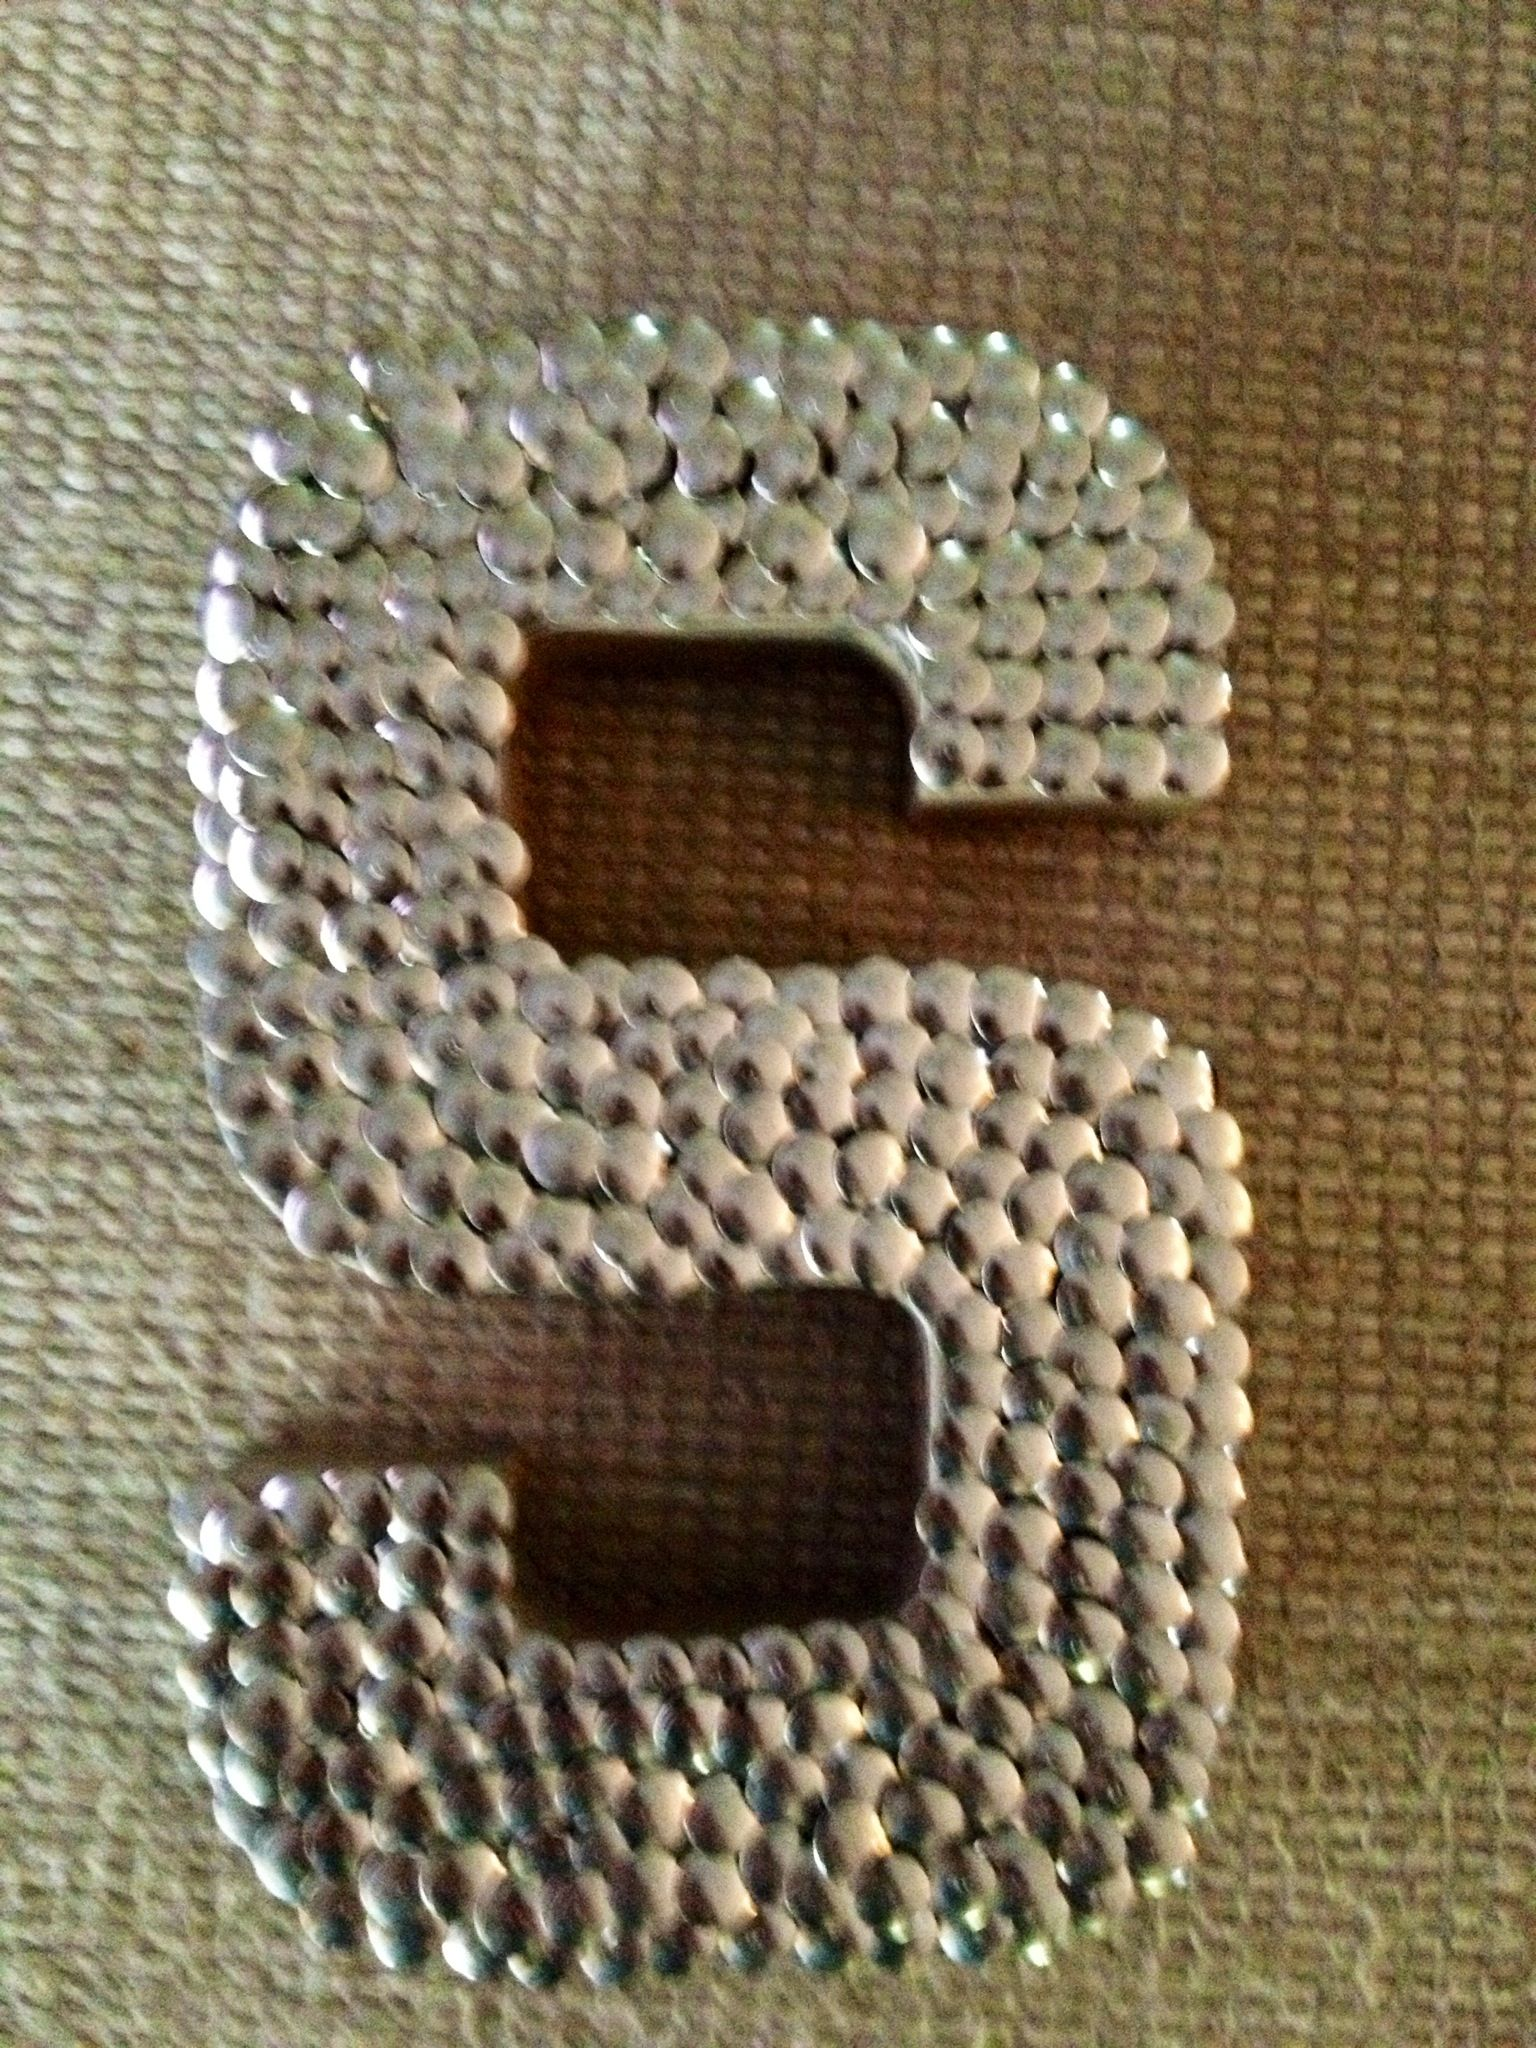 Cardboard Letter From Hobby Lobby Covered In Thumbtacks So Simple Yet Super Stunning Letter A Crafts Cardboard Letters Lettering